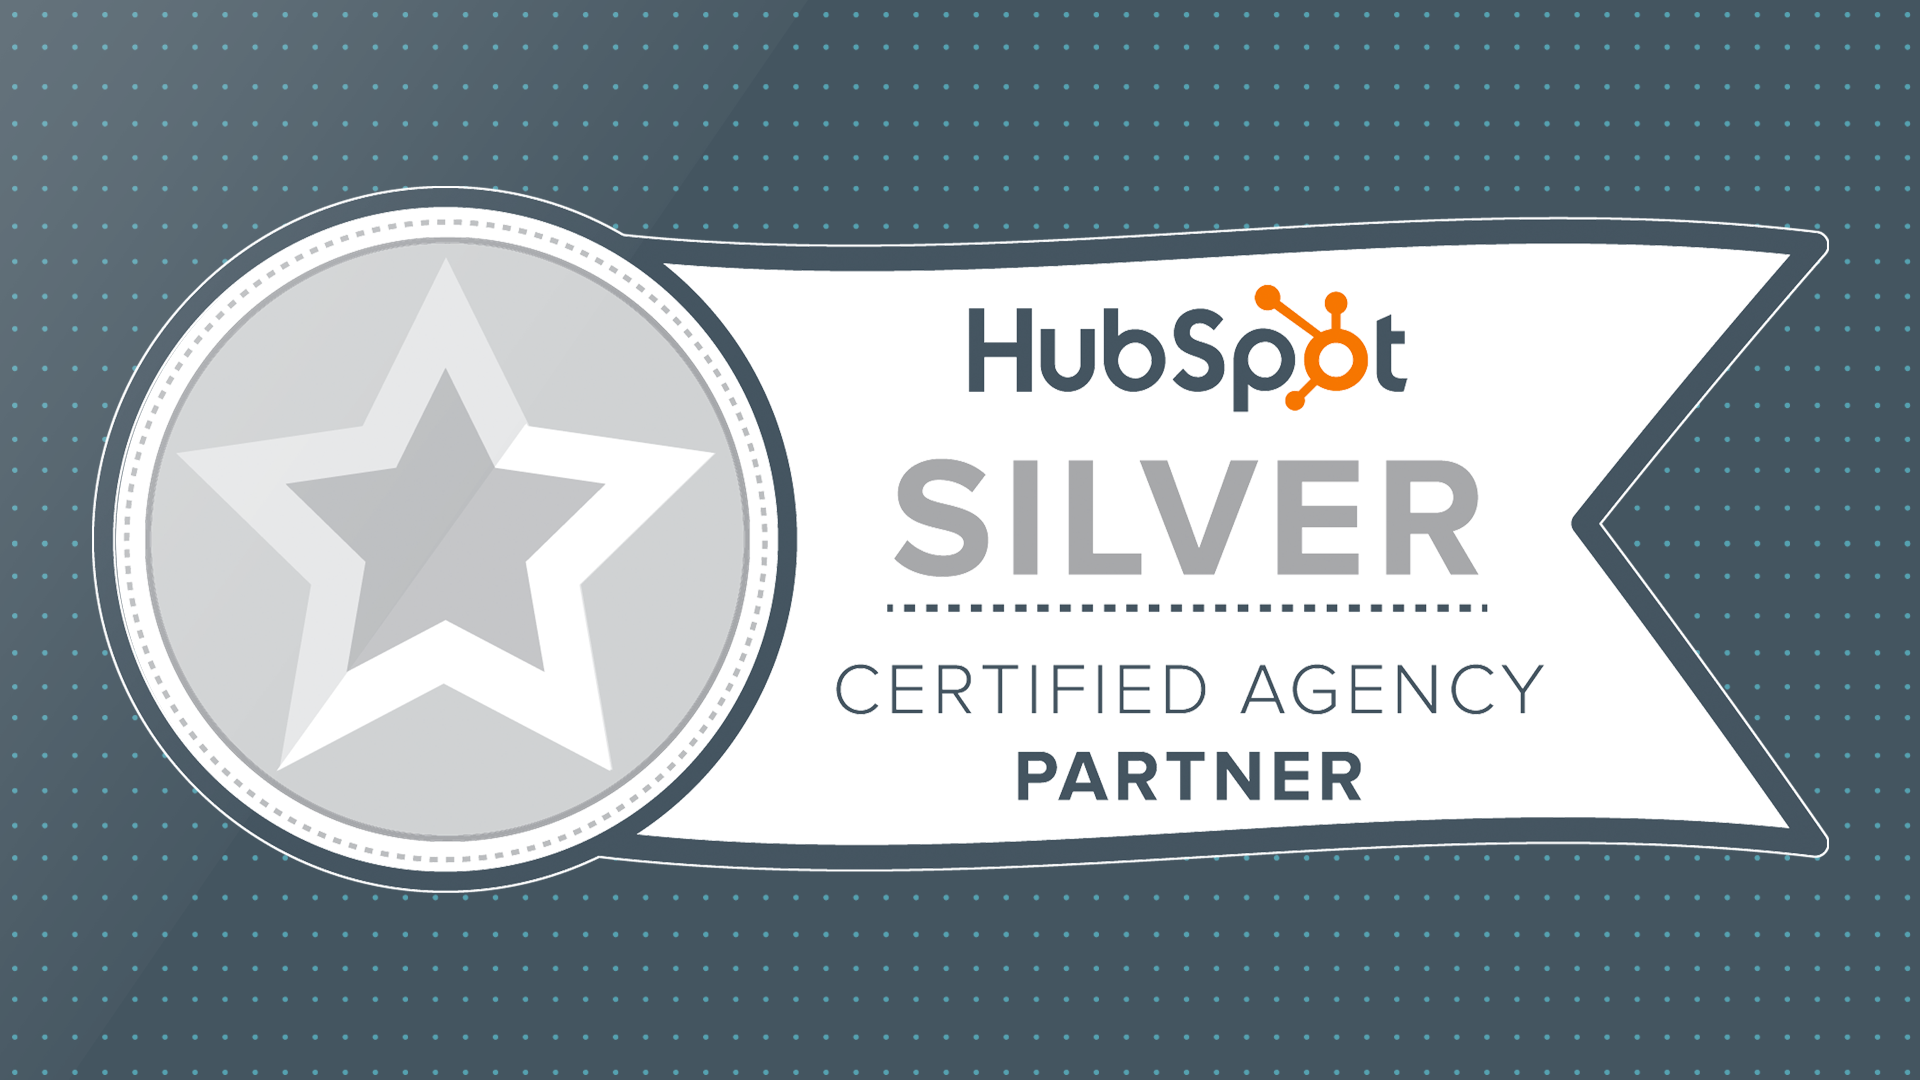 Creative Arcade Becomes a HubSpot Silver-Tiered Partner Featured Image